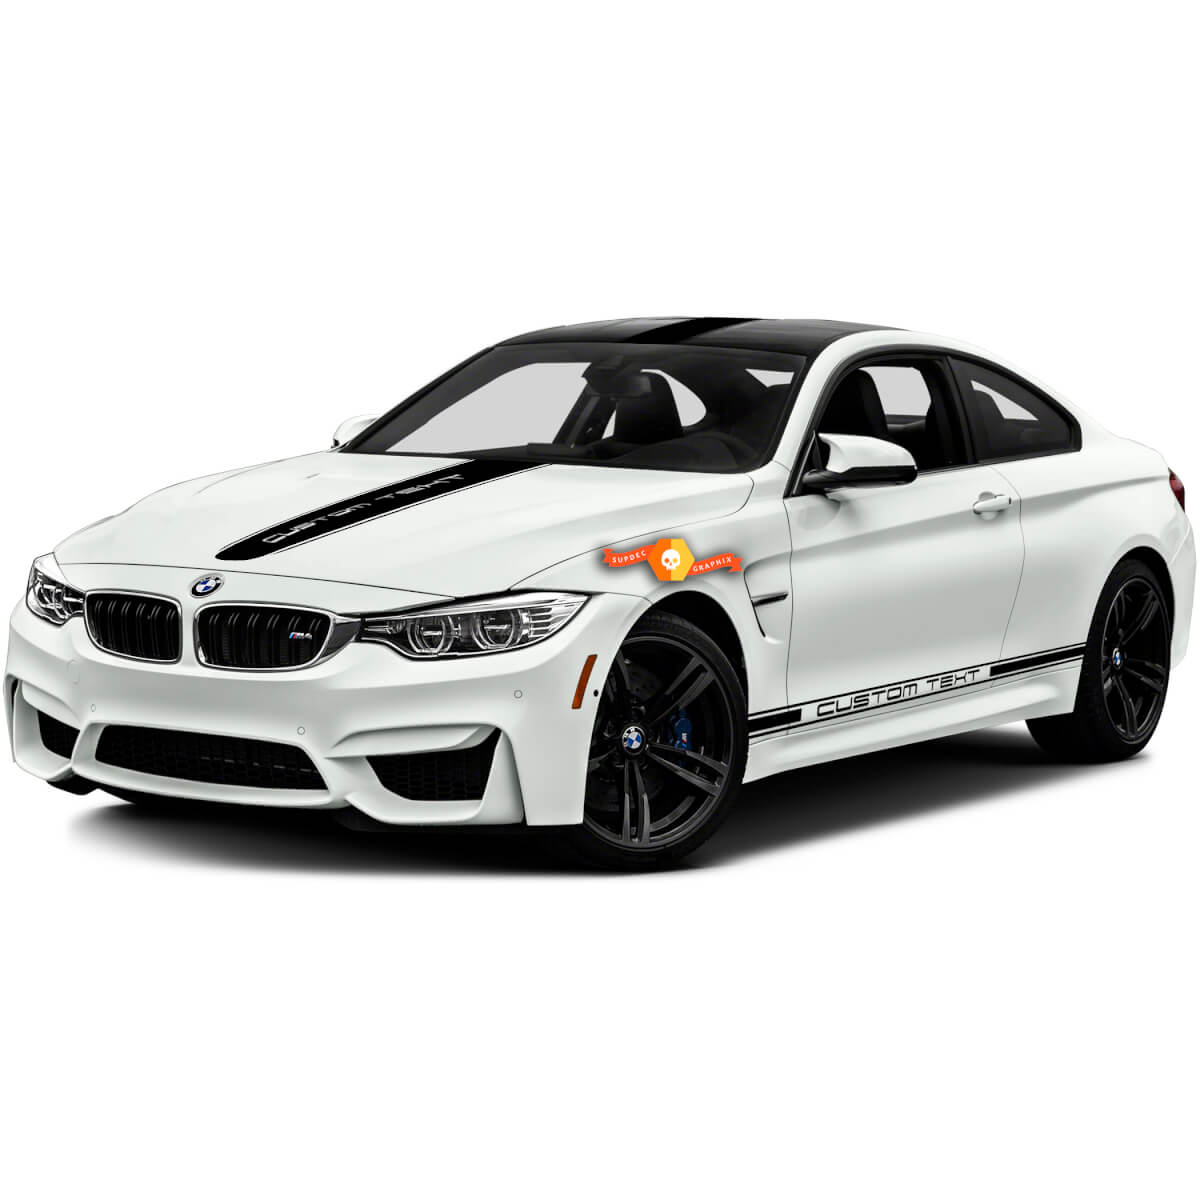 BMW M bmw m3 m4 one color racing stripes and hood top sides vinyl decals stickers